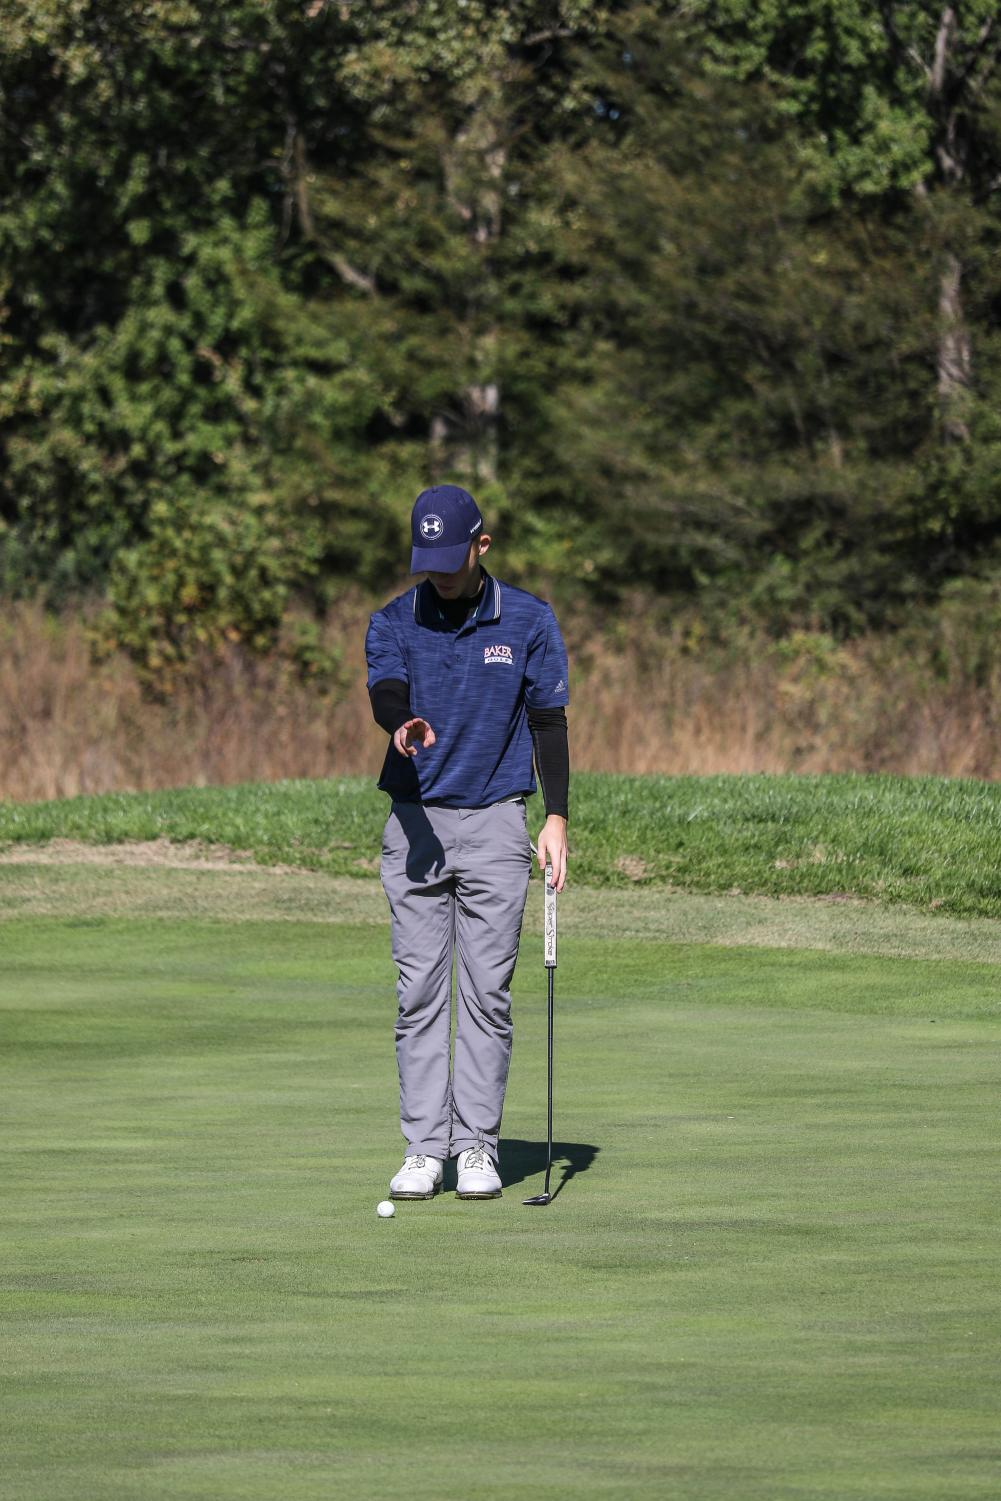 Junior+Cole+Briggs+uses+his+hands+to+help+read+the+green+for+an+upcoming+putt.+Briggs+made+the+putt+for+par+during+the+Baker+Invitational+at+Eagle+Bend+golf+course+in+Lawrence.+